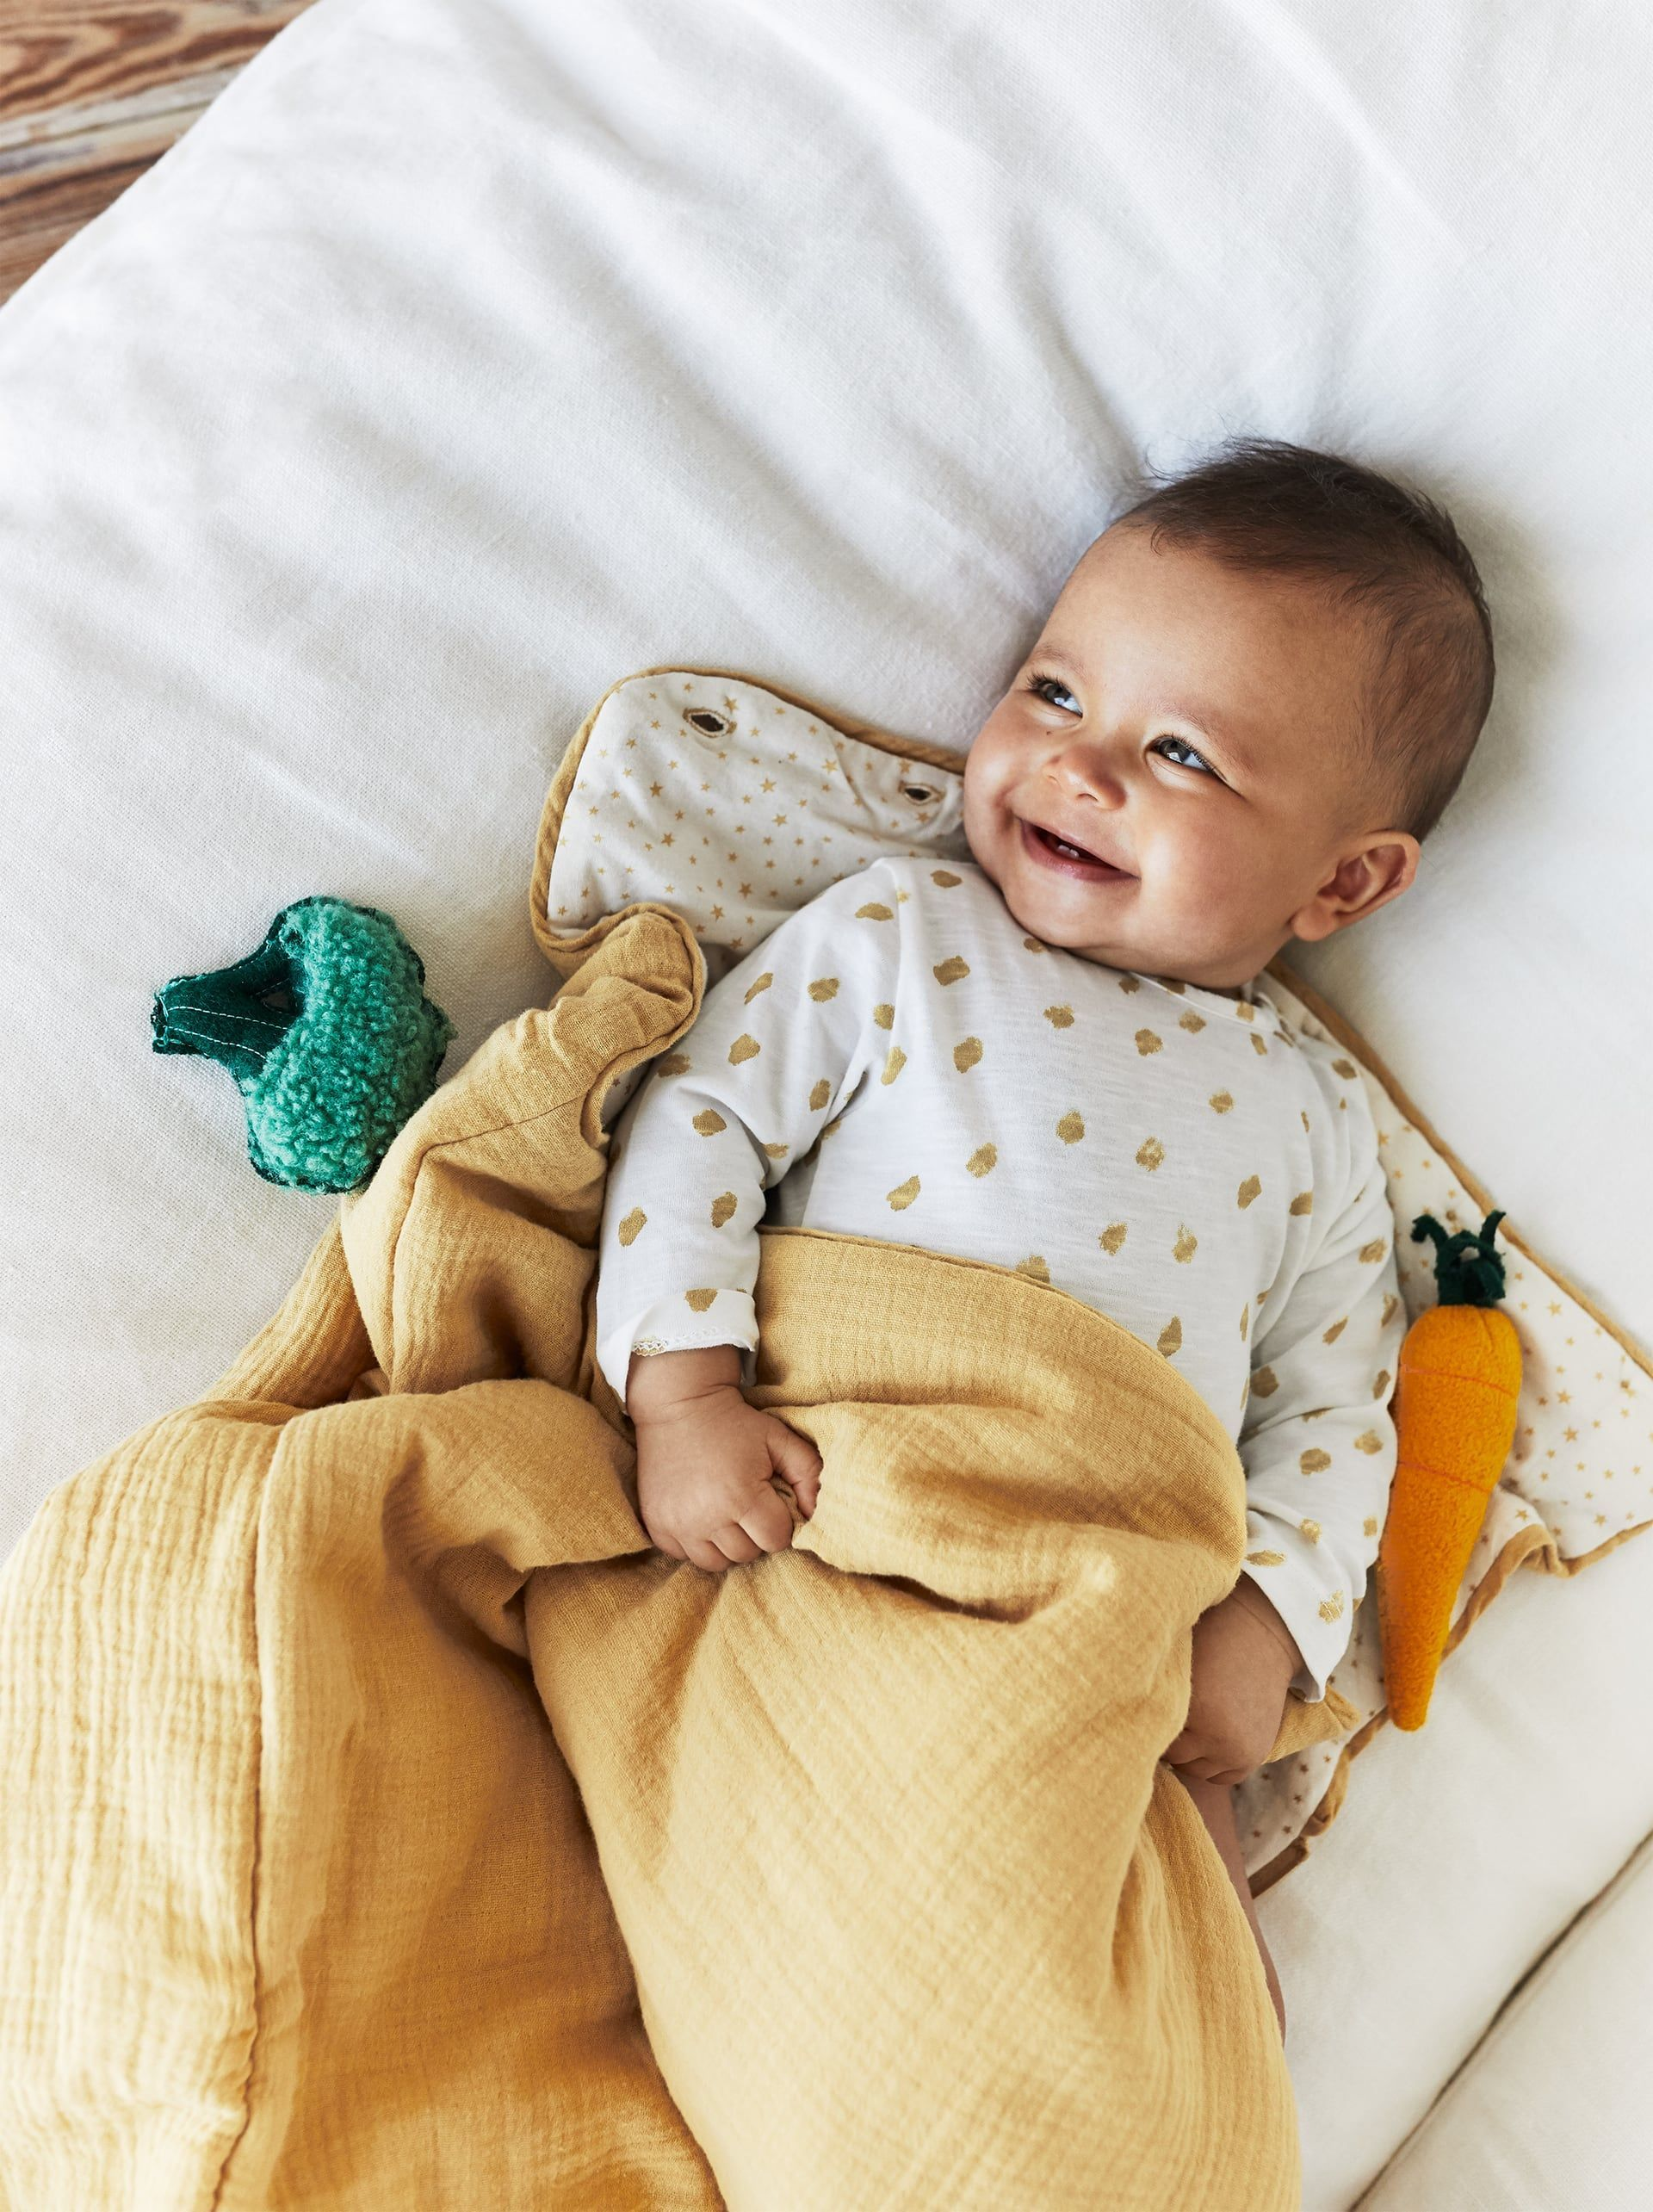 World Center of Baby (WCOB) is a fullservice surrogacy